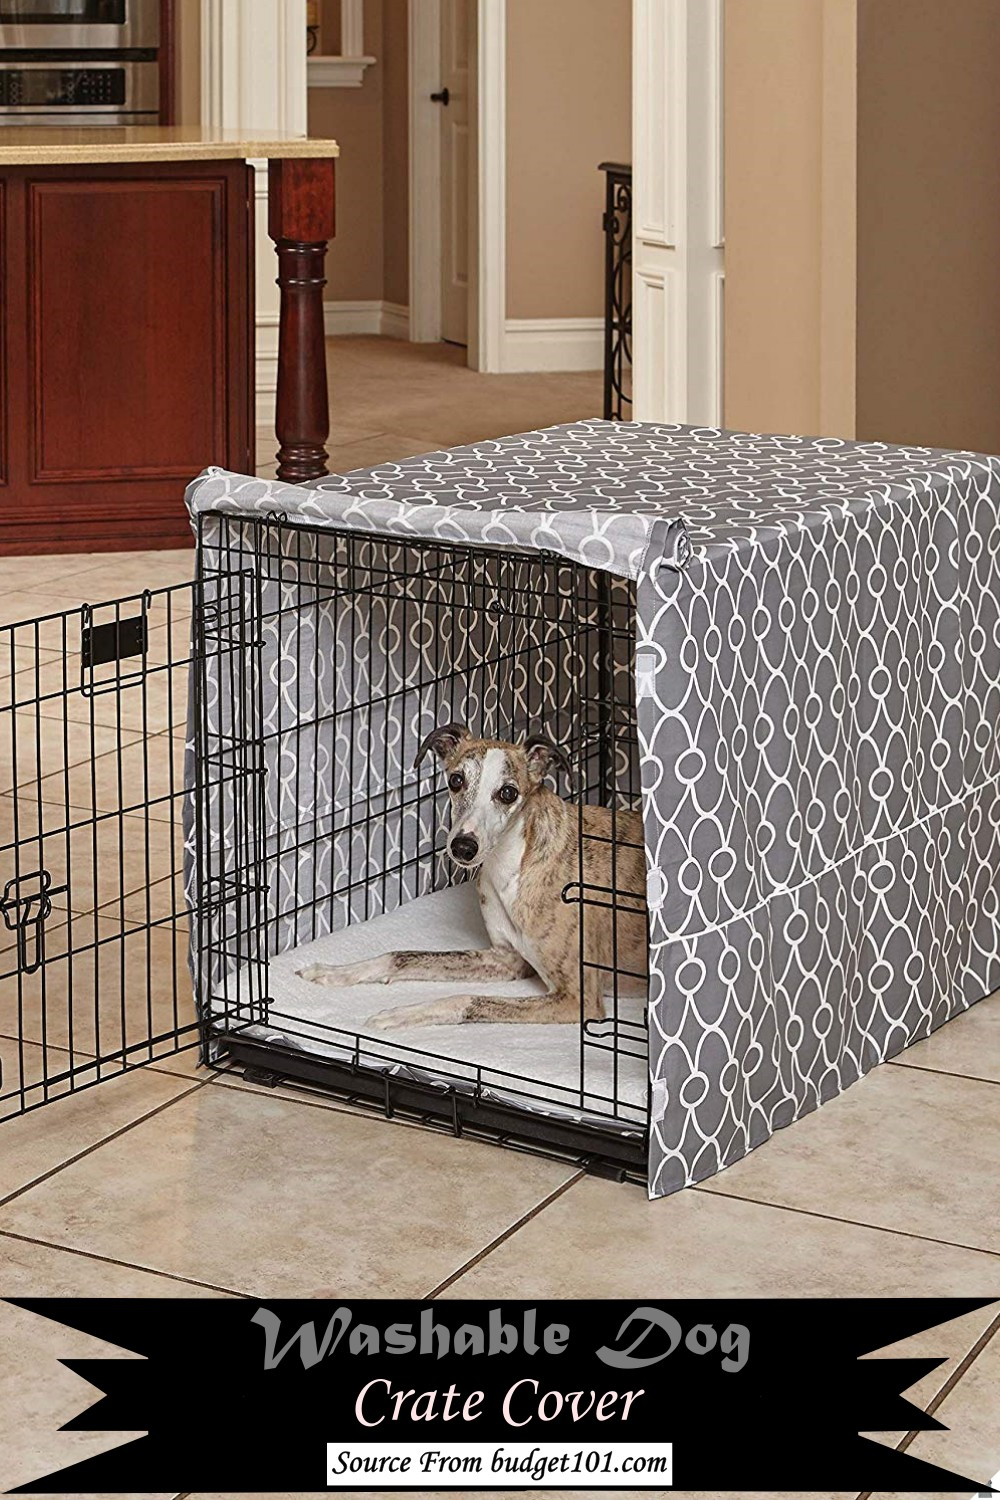 Washable Dog Crate Cover